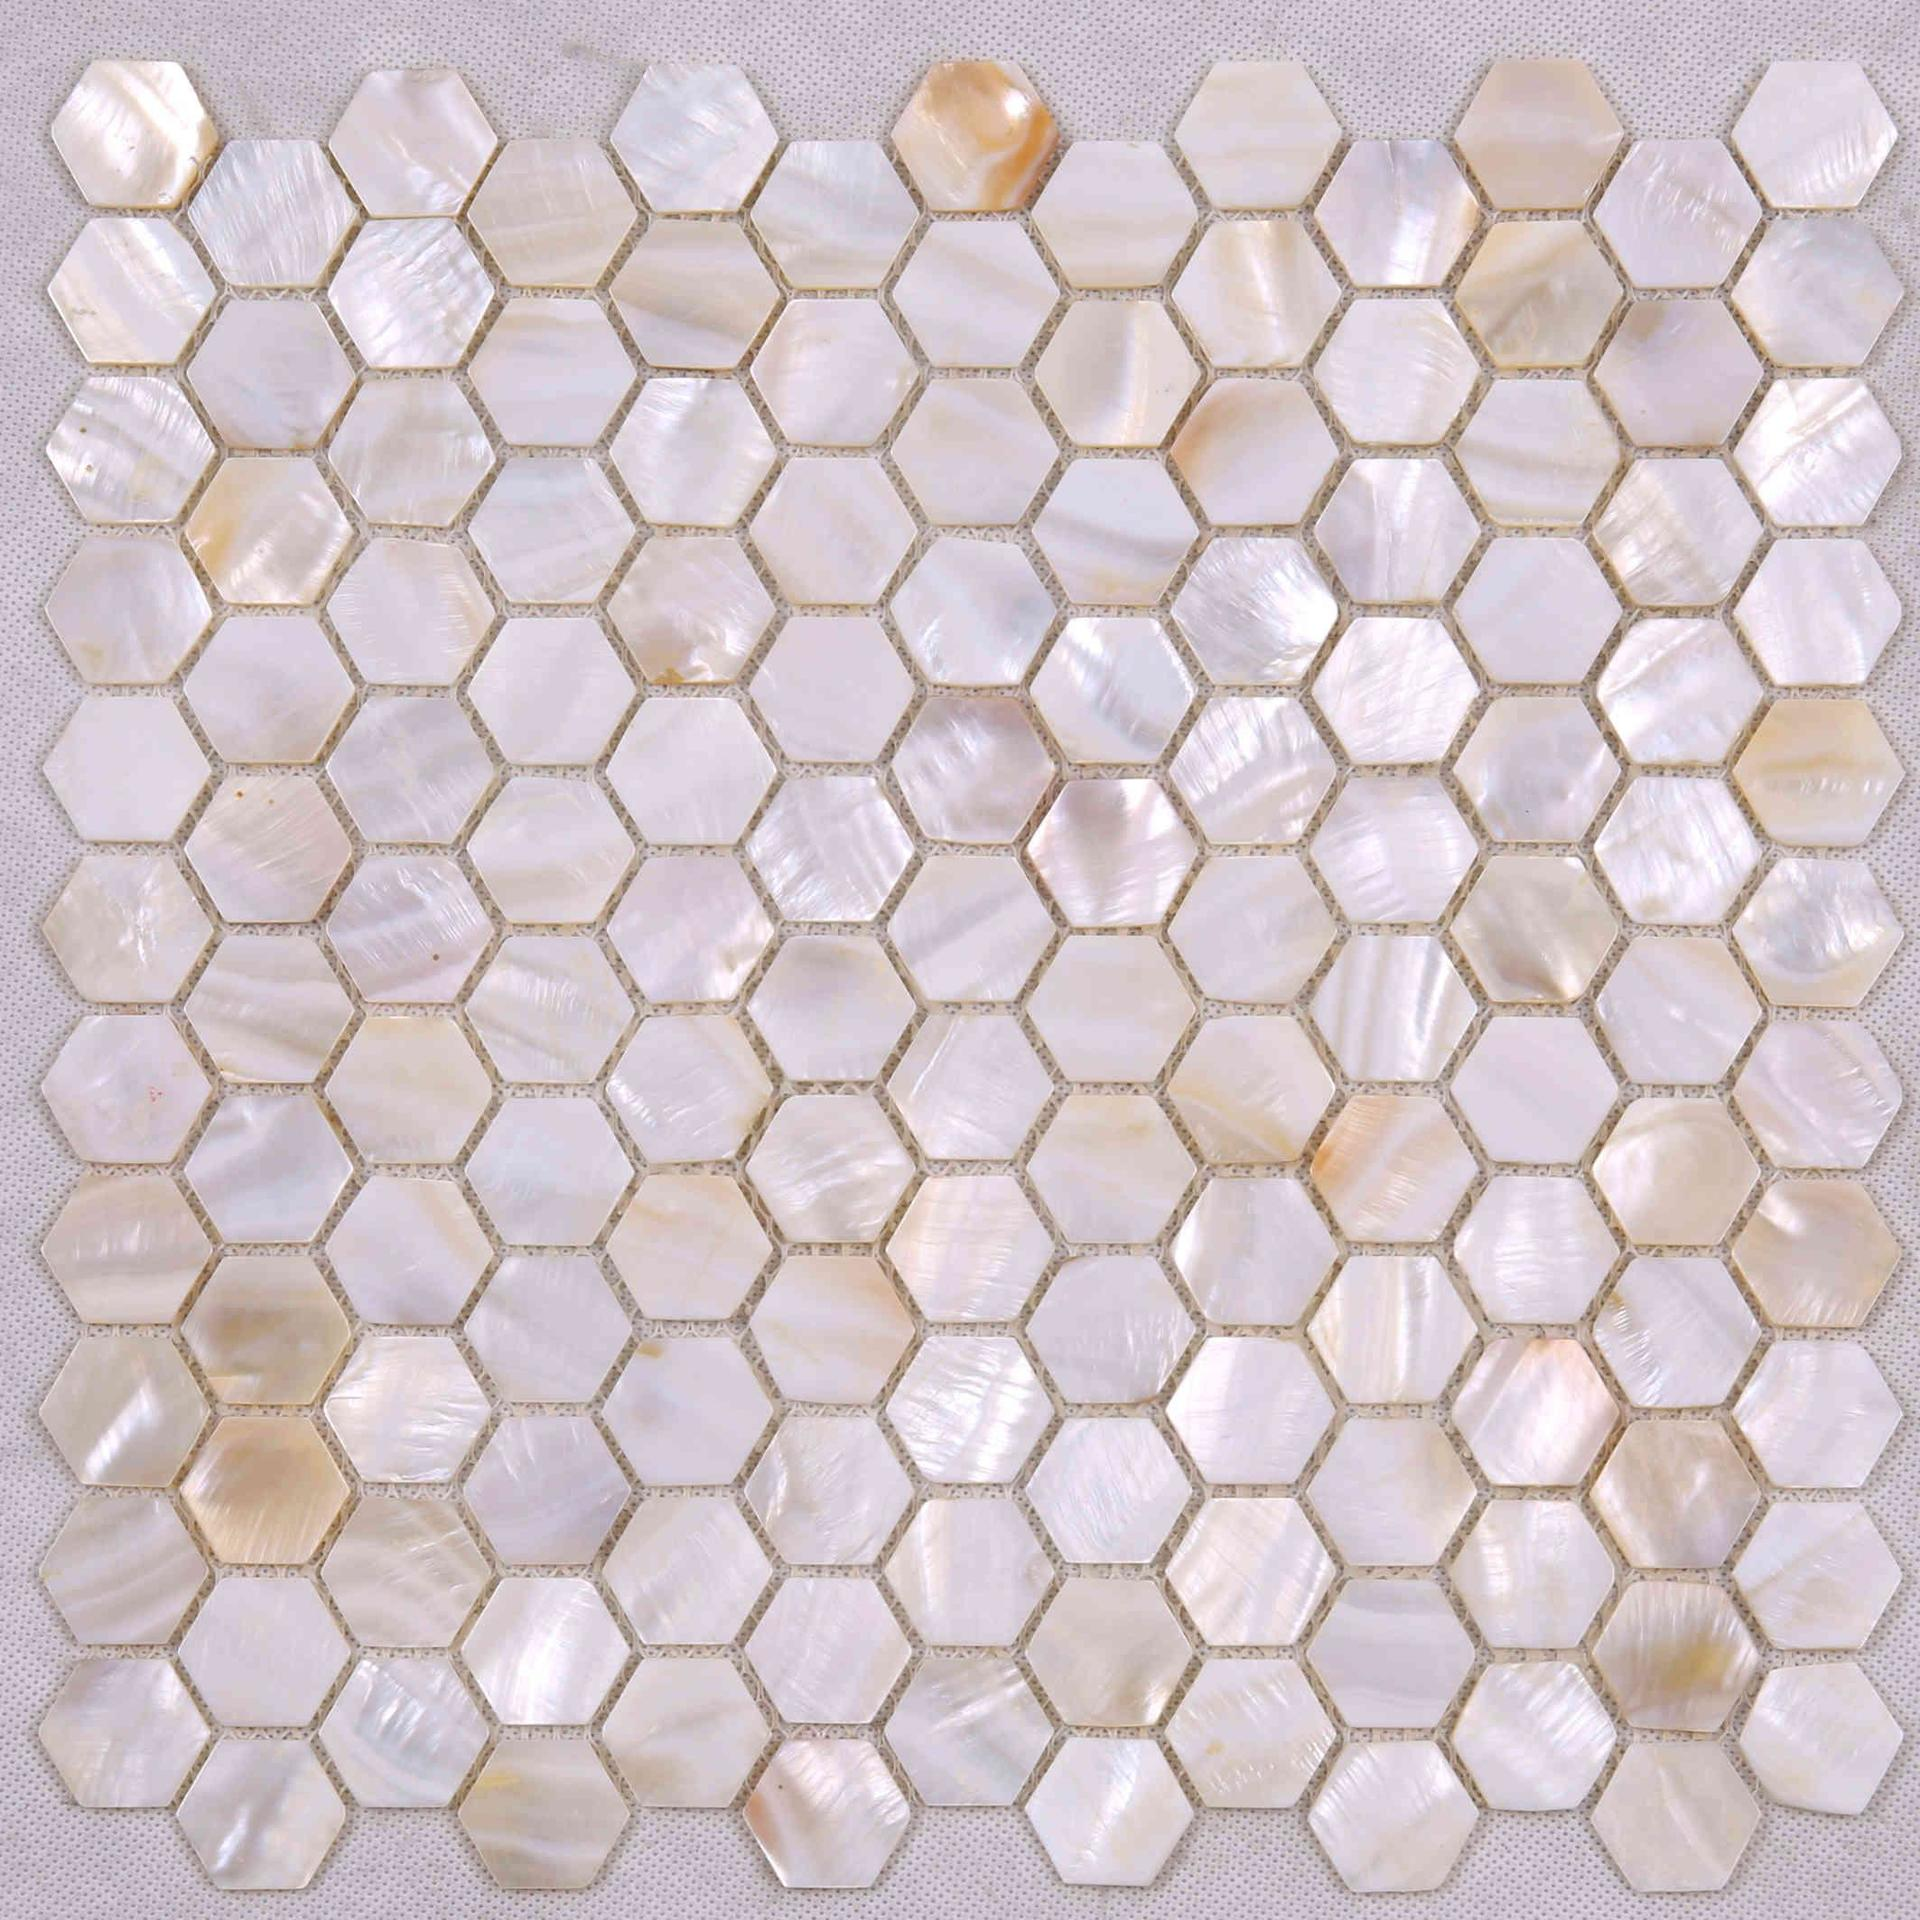 Heng Xing High-quality shell mosaic Suppliers